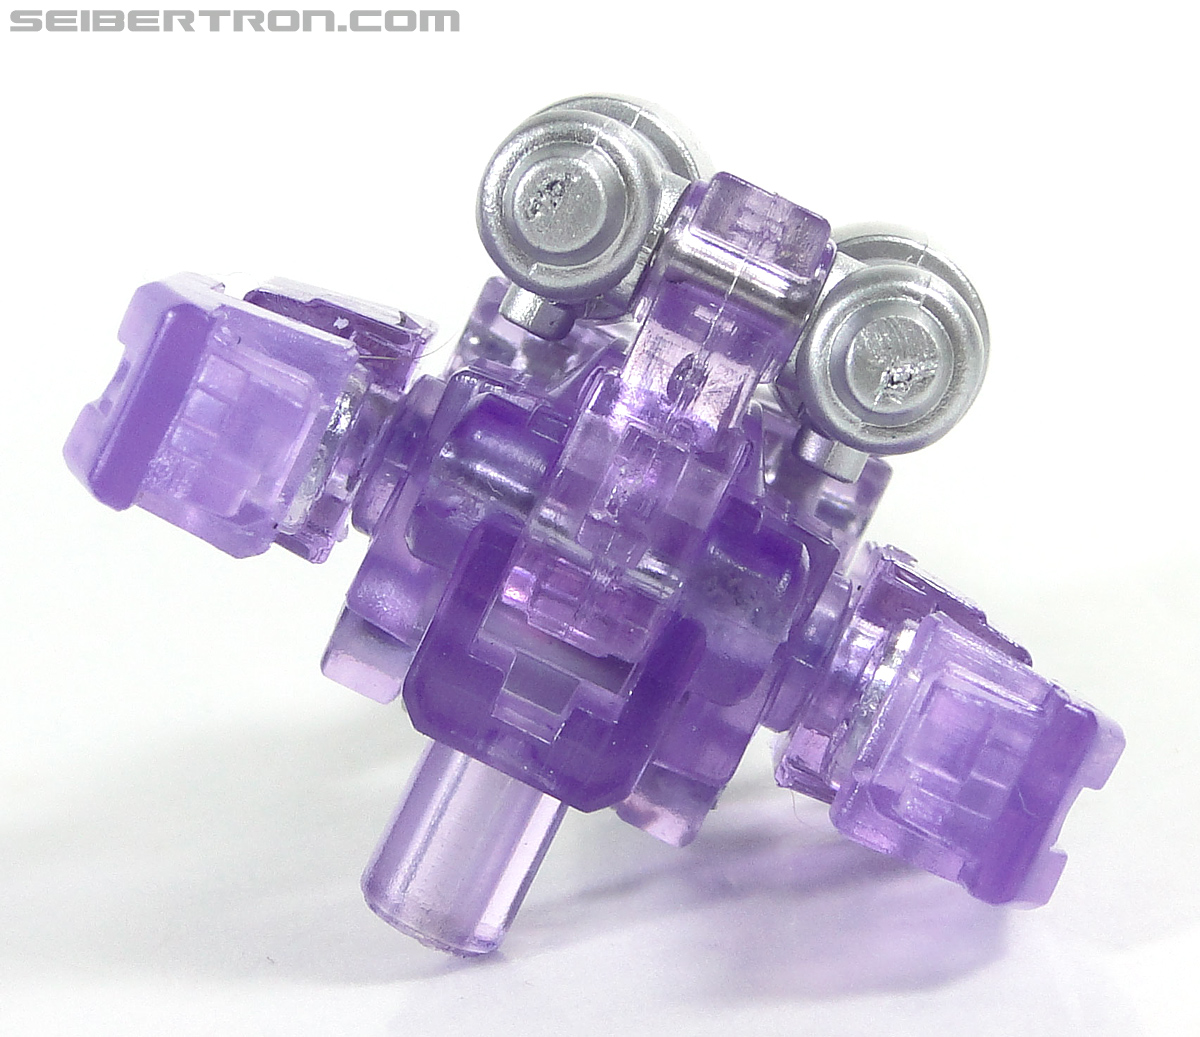 Transformers United Nightstick (e-Hobby) (Image #4 of 74)